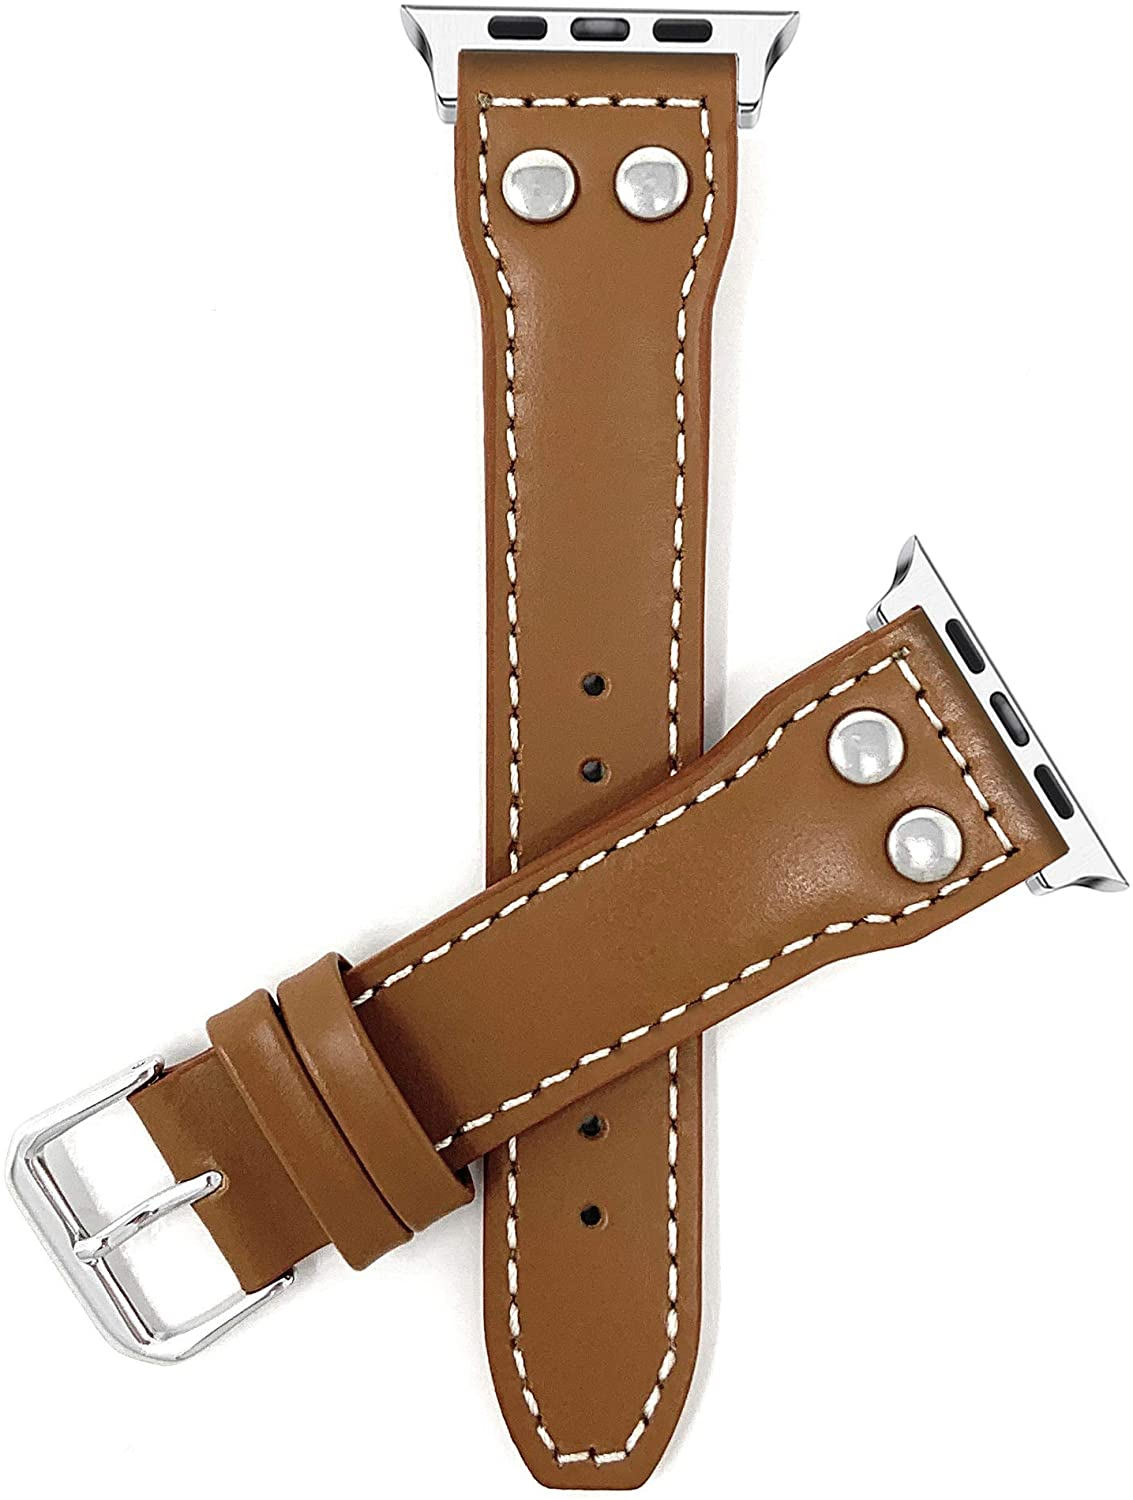 Bandini Compatible Apple Watch Band, Leather Replacement Watch Band for iWatch Strap, Compatible Apple Watch Series 5, 4, 3, 2 and 1-2 Rivets - Tan/Silver Connector - 38mm / 40mm